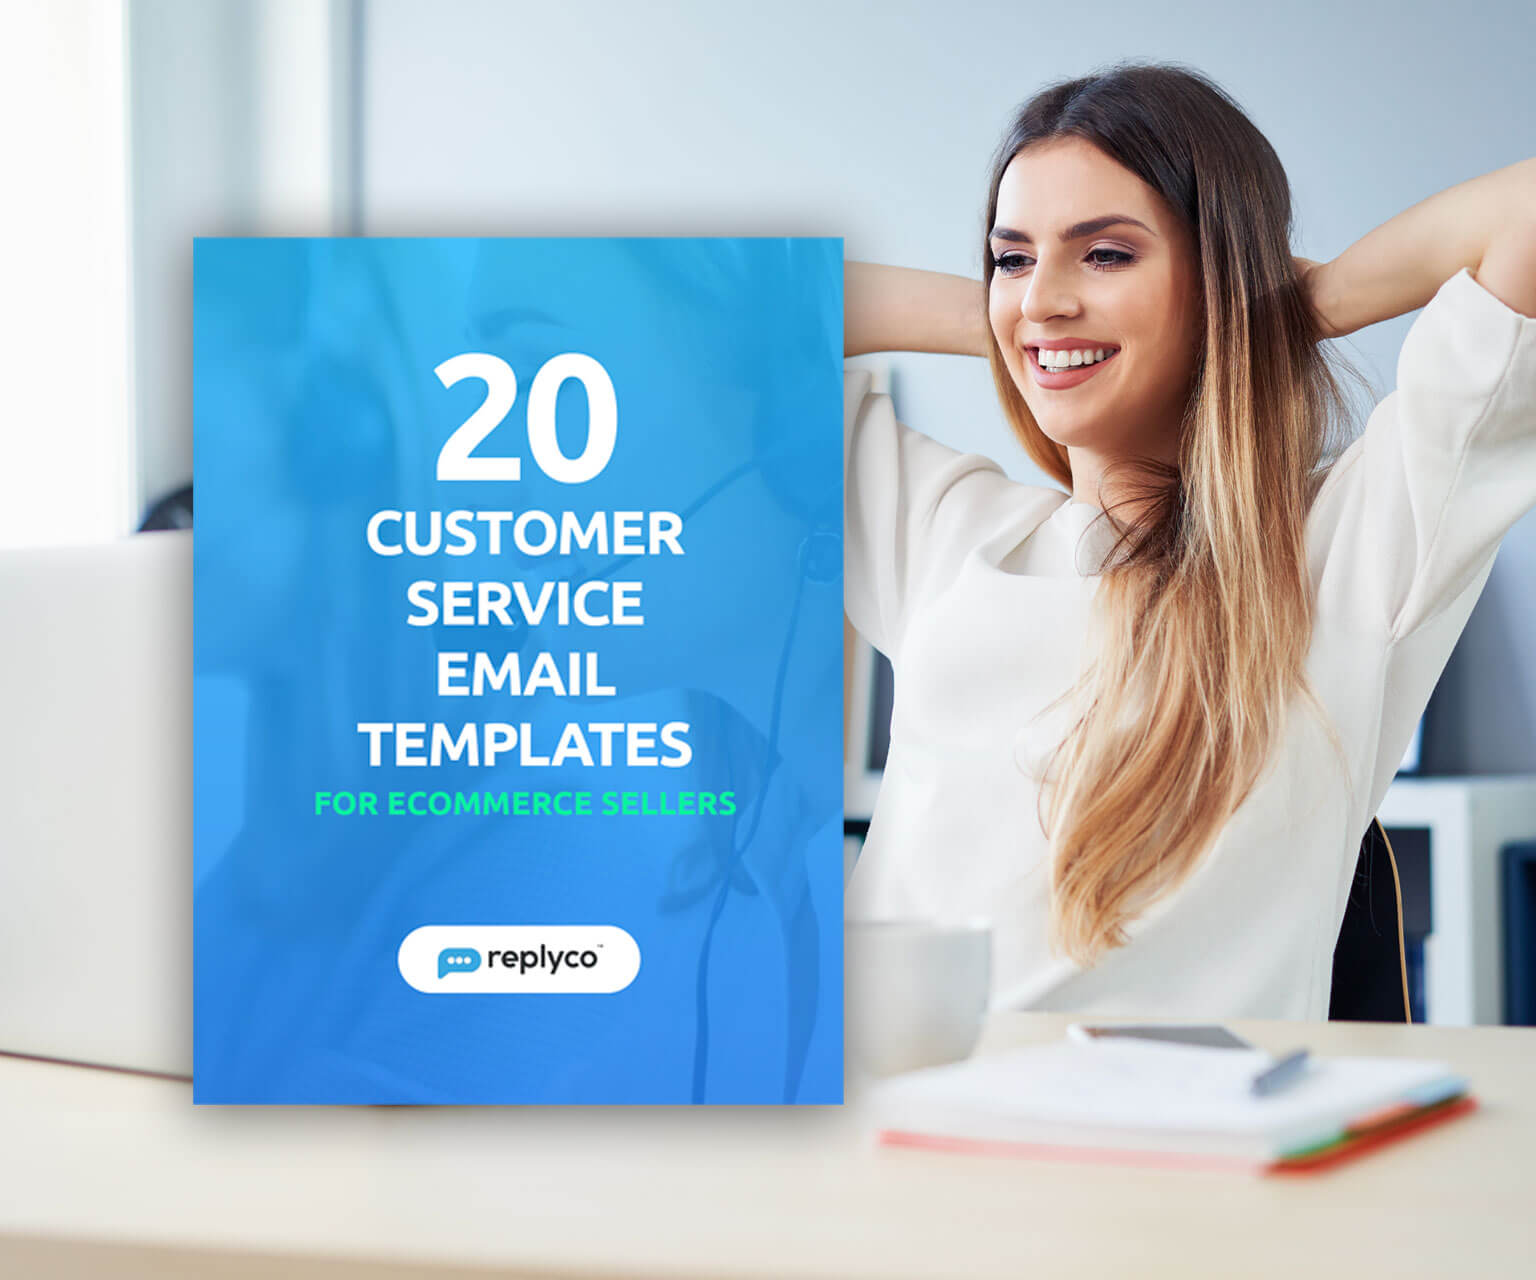 Replyco Helpdesk 20 Customer Service Email Templates